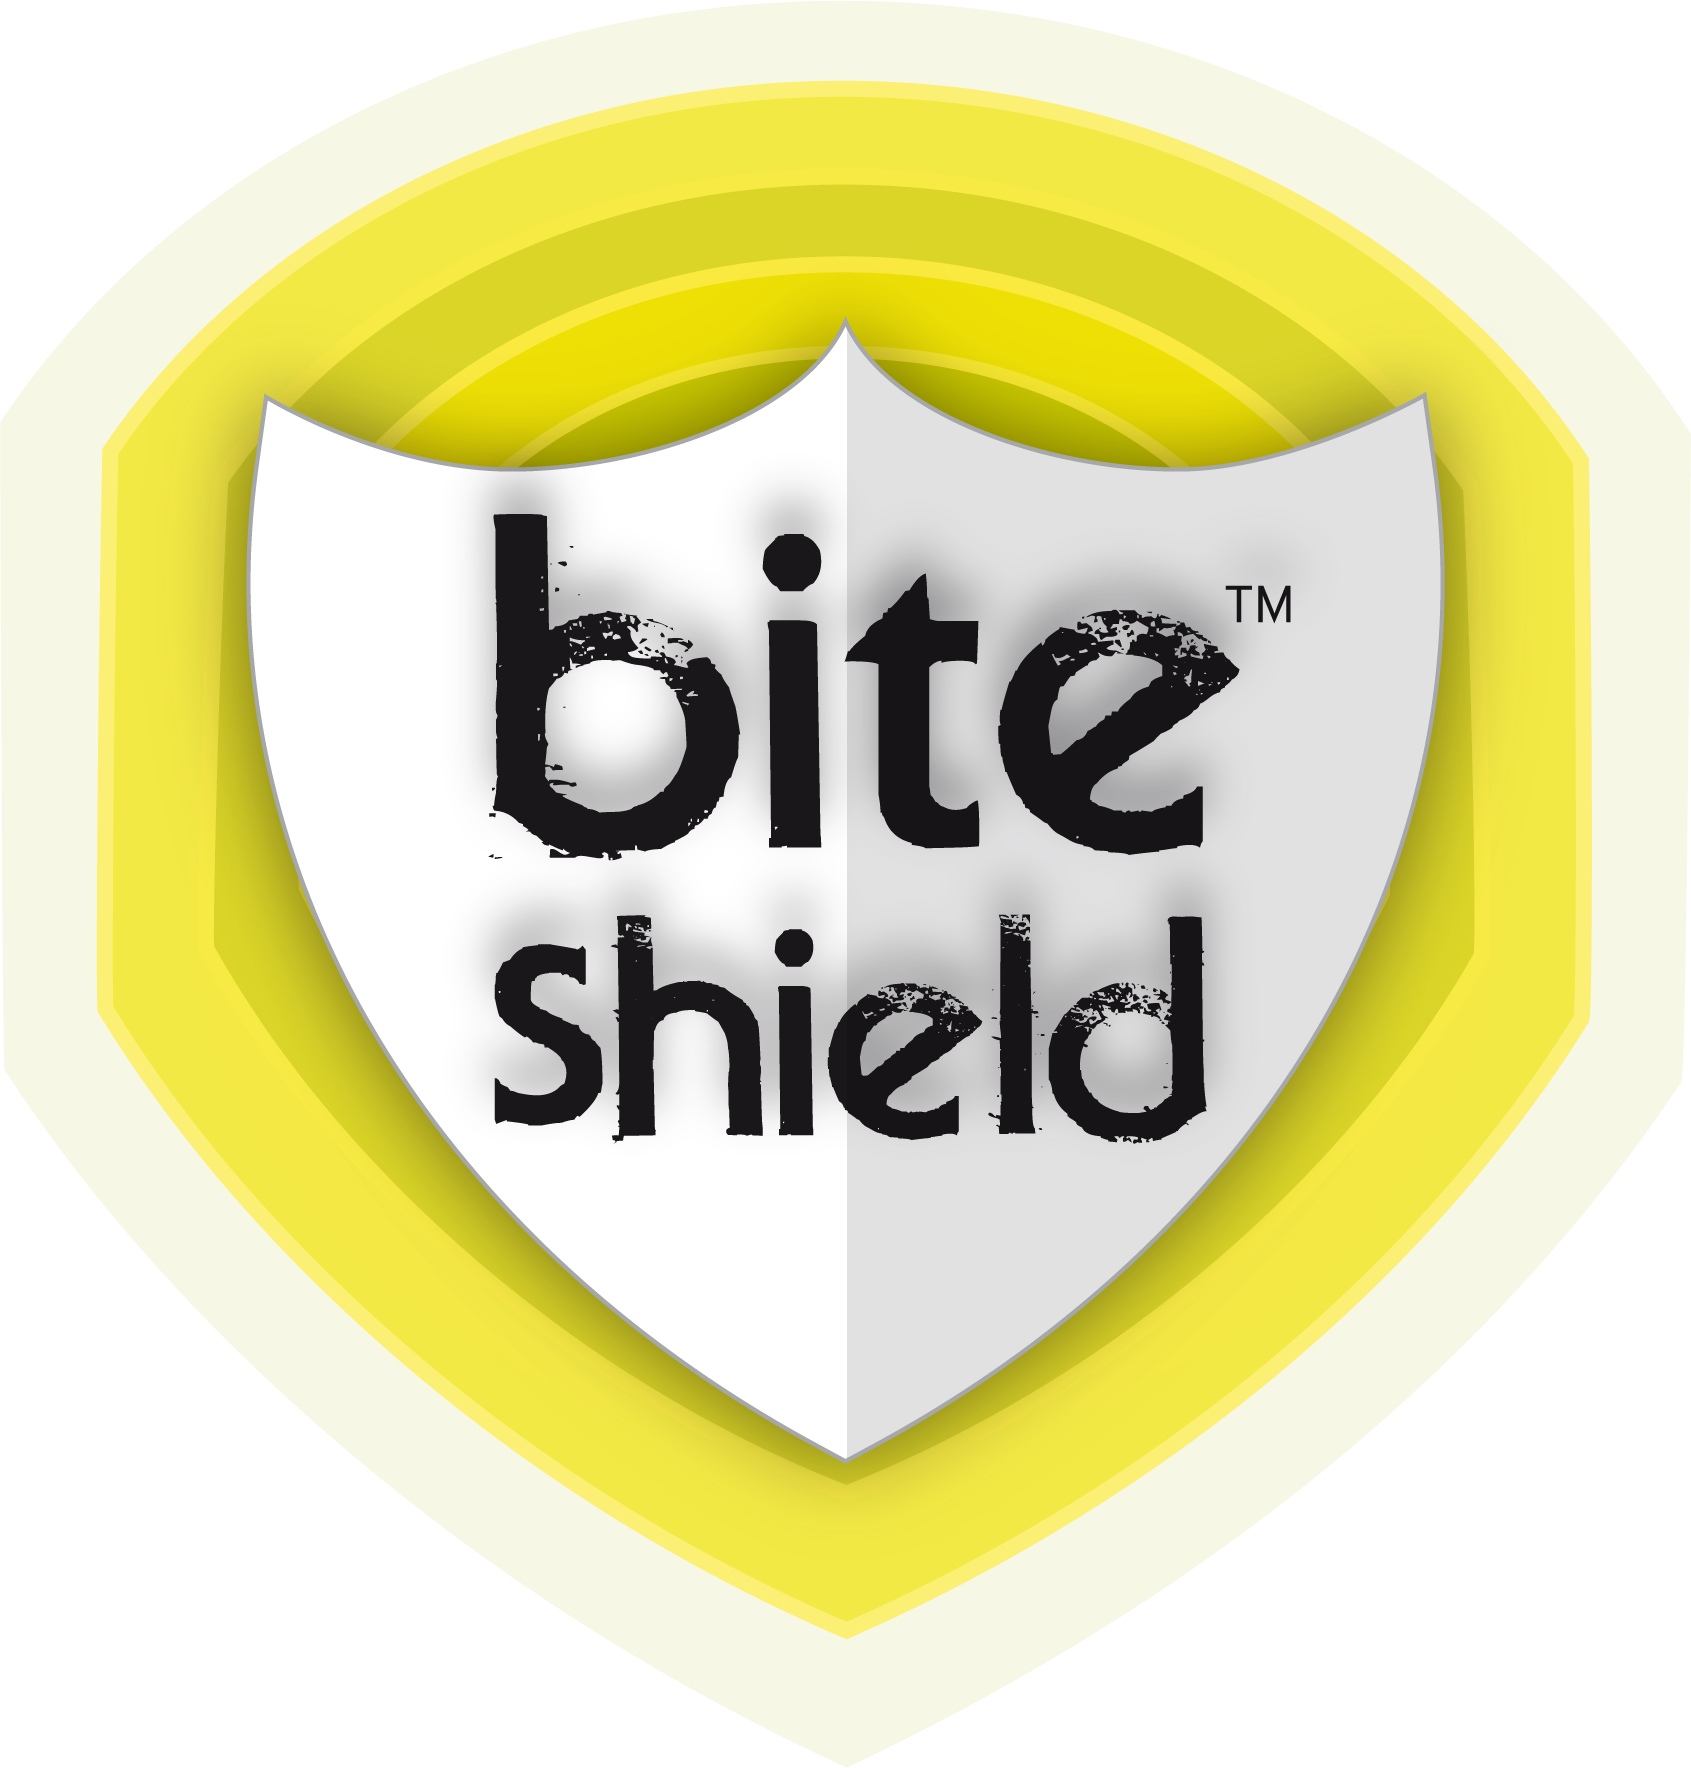 Construction shieldlogo with labels png with. Biteshield under